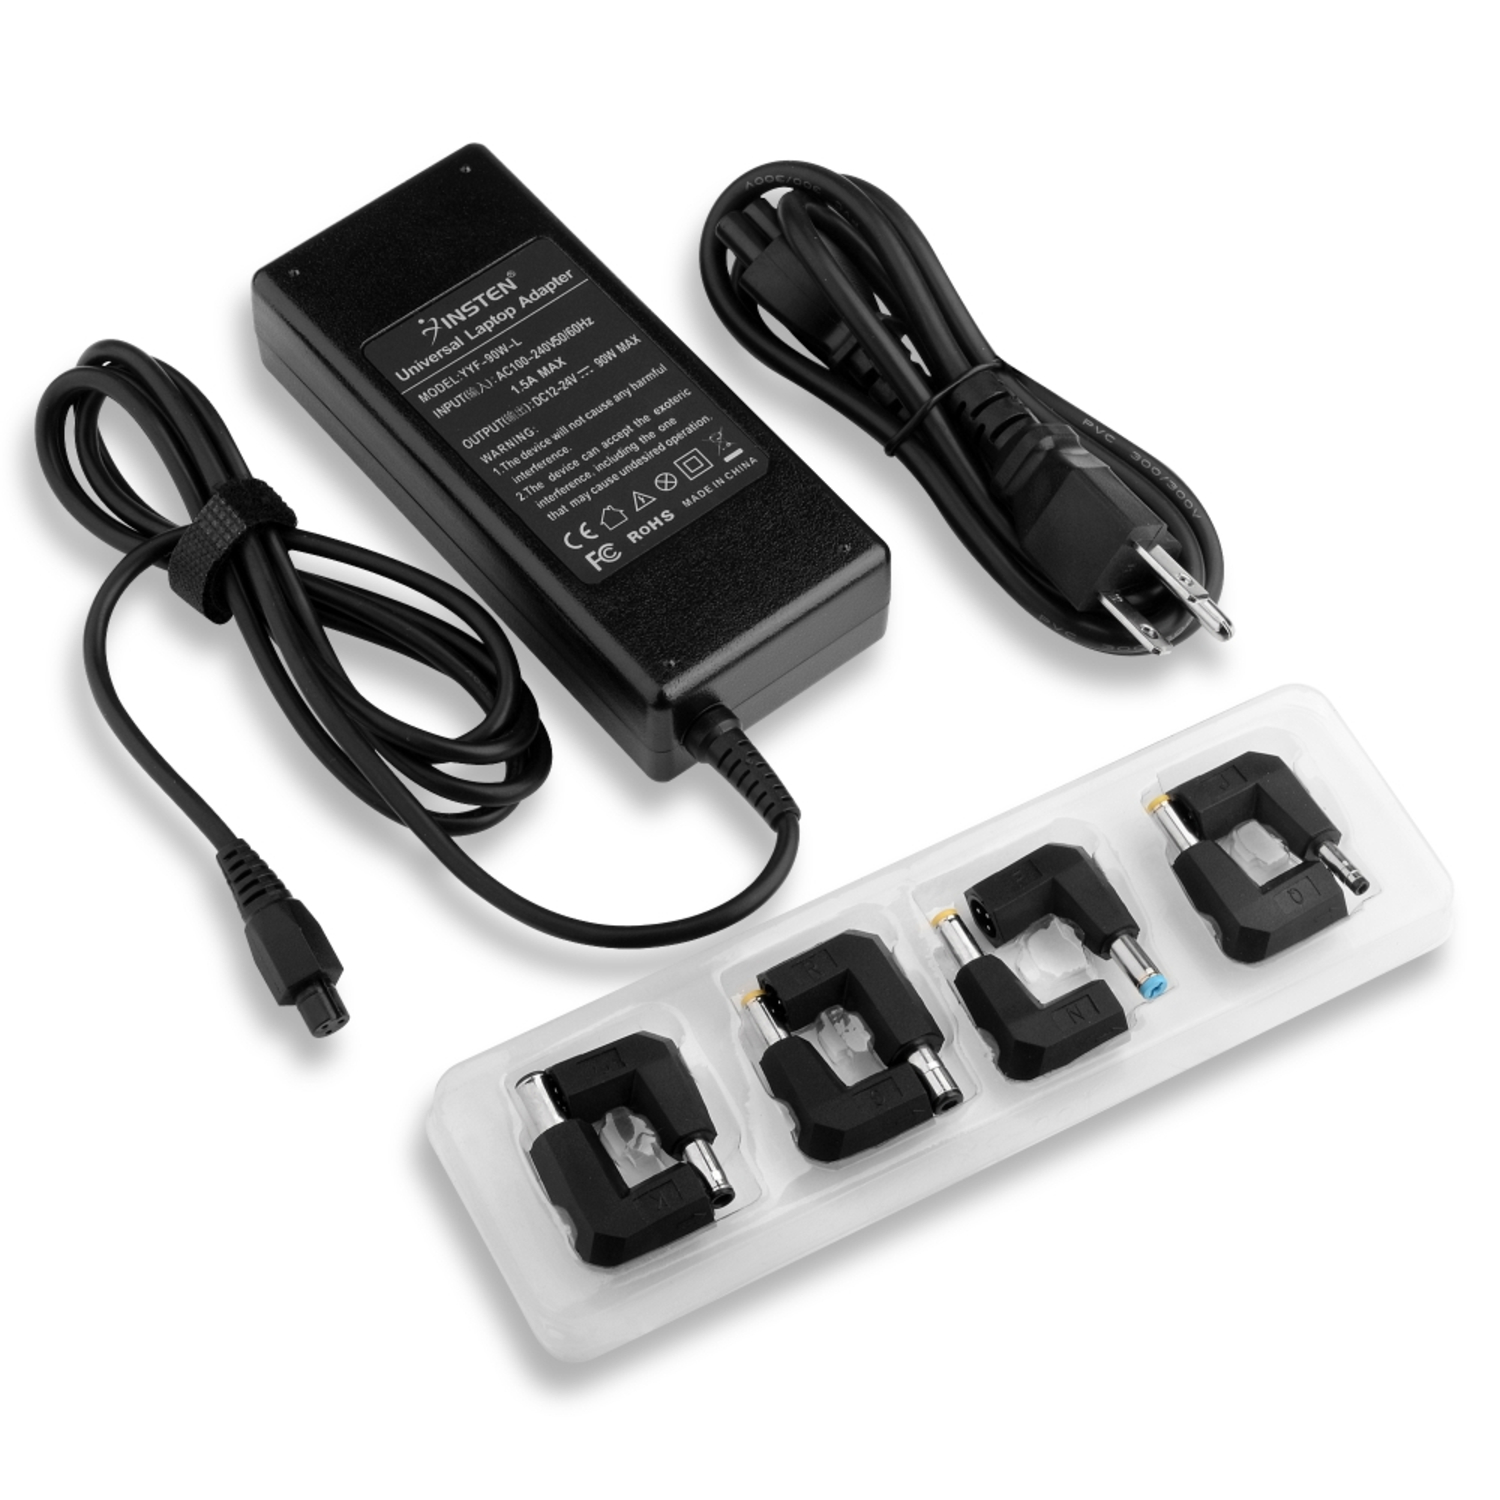 Insten Universal Laptop AC Wall Power Adapter Charger Set, 8 Connectors